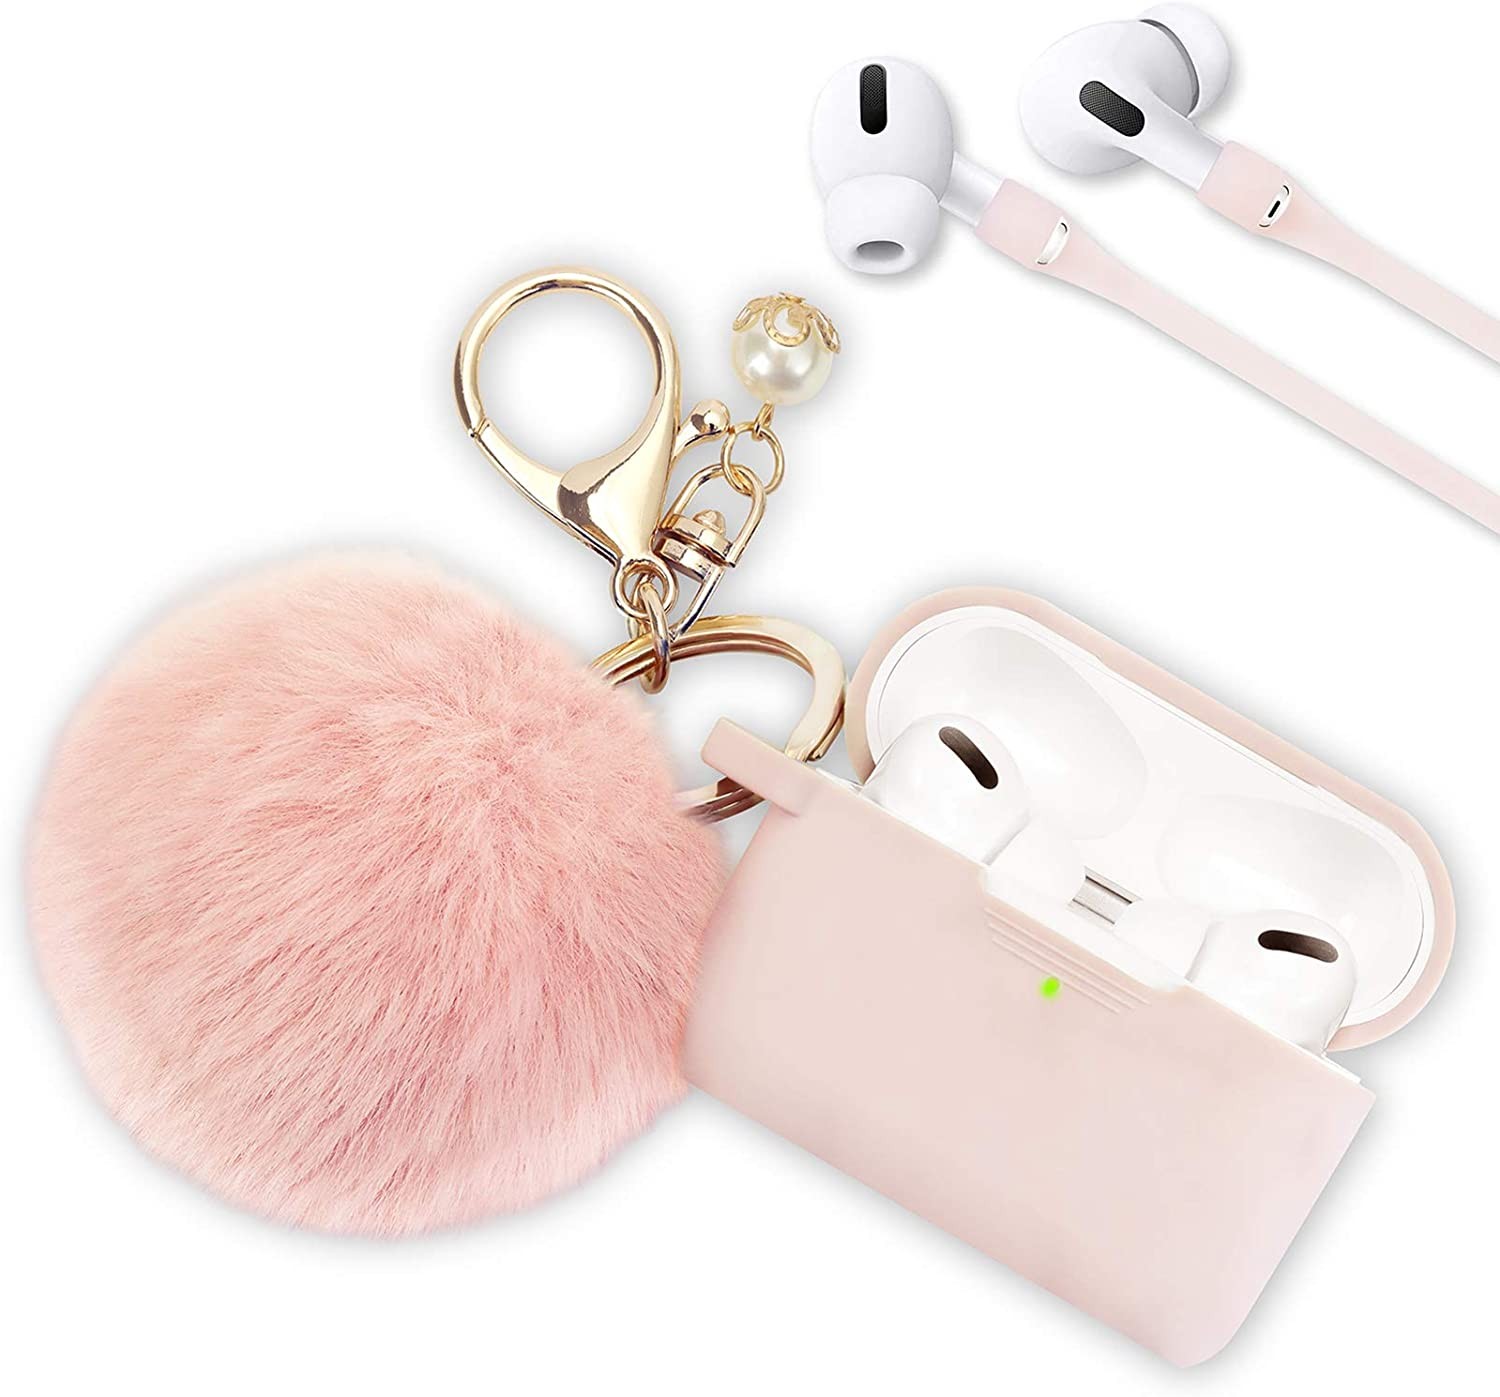 Case for Airpods Pro, Filoto Airpod Pro Case Cover for Apple AirPods Pro Wireless Charging Case, Cute Air Pods 3 Case Silicone Protective Accessories Keychain/Pompom/Strap (Cividini Pink)